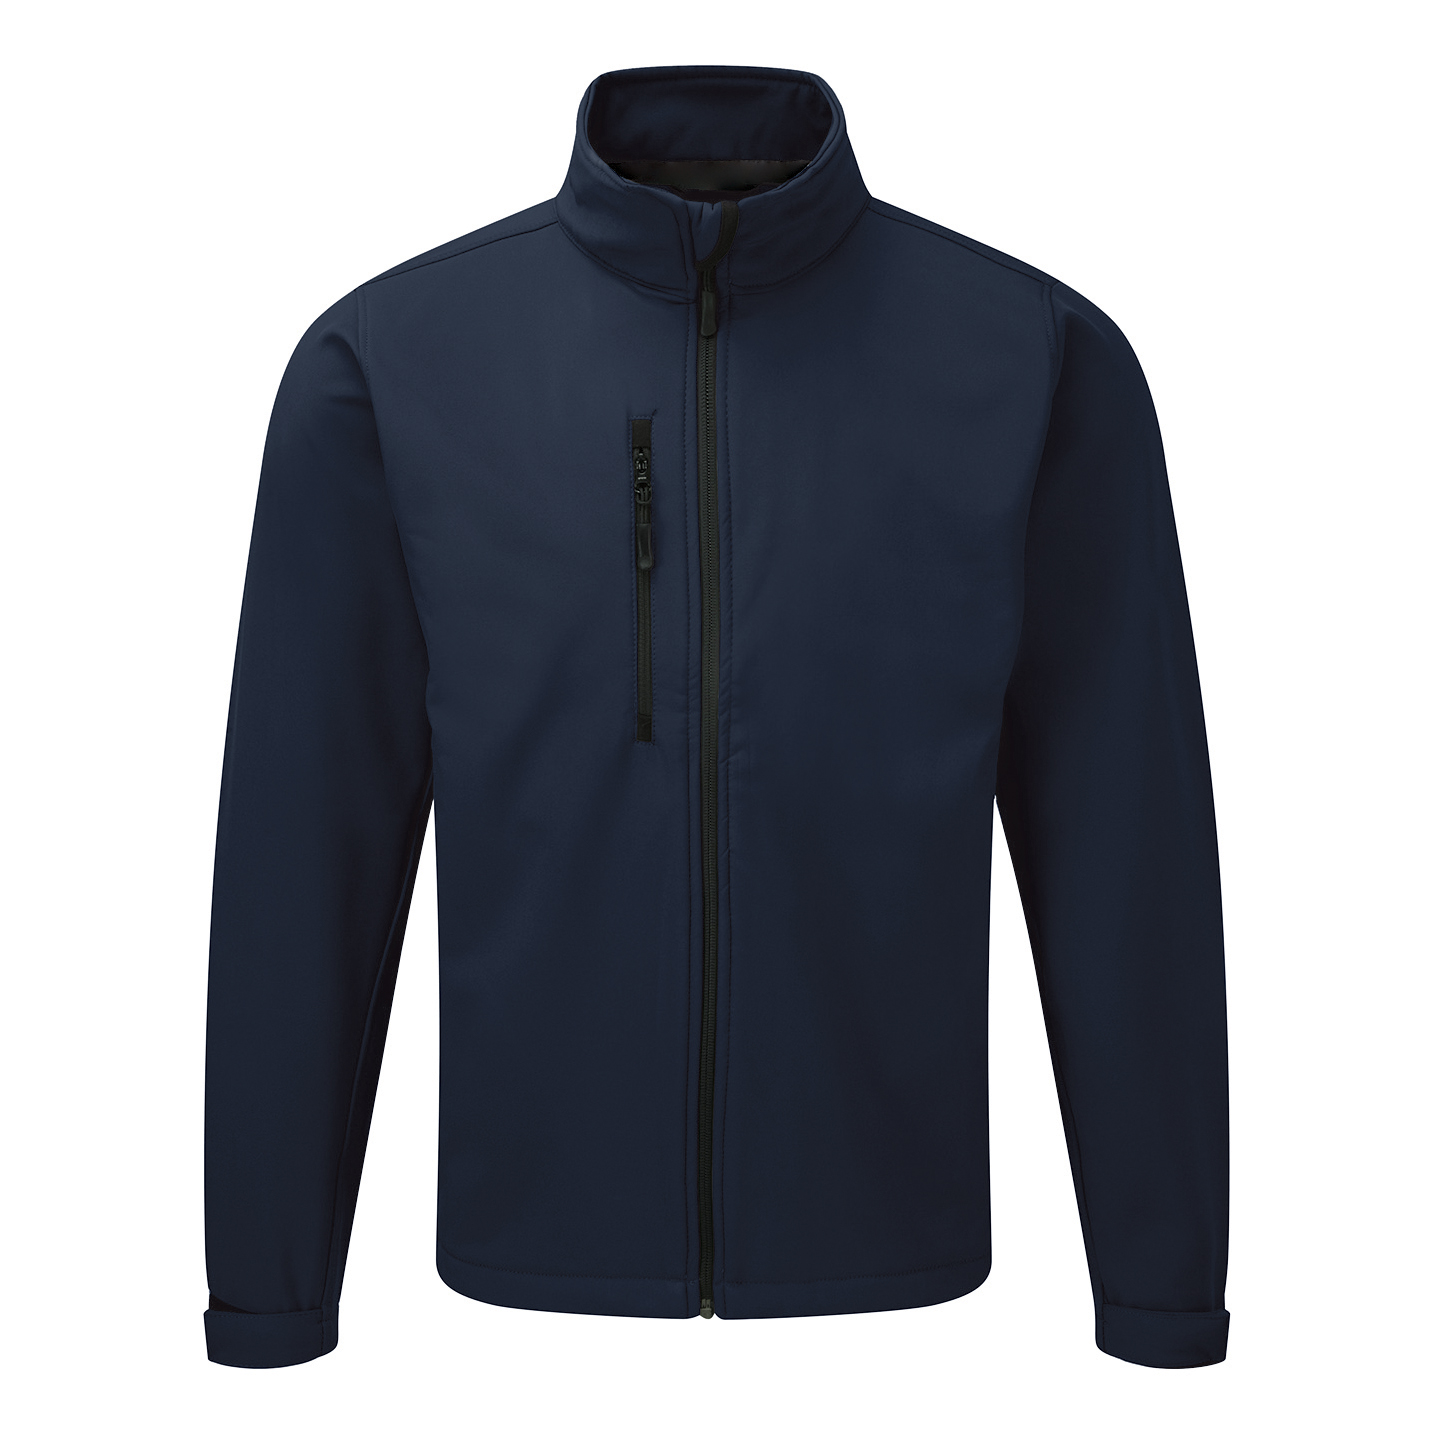 Jacket Soft Shell Water Resistant Breathable 5XL Navy Blue *Approx 3 Day Leadtime*